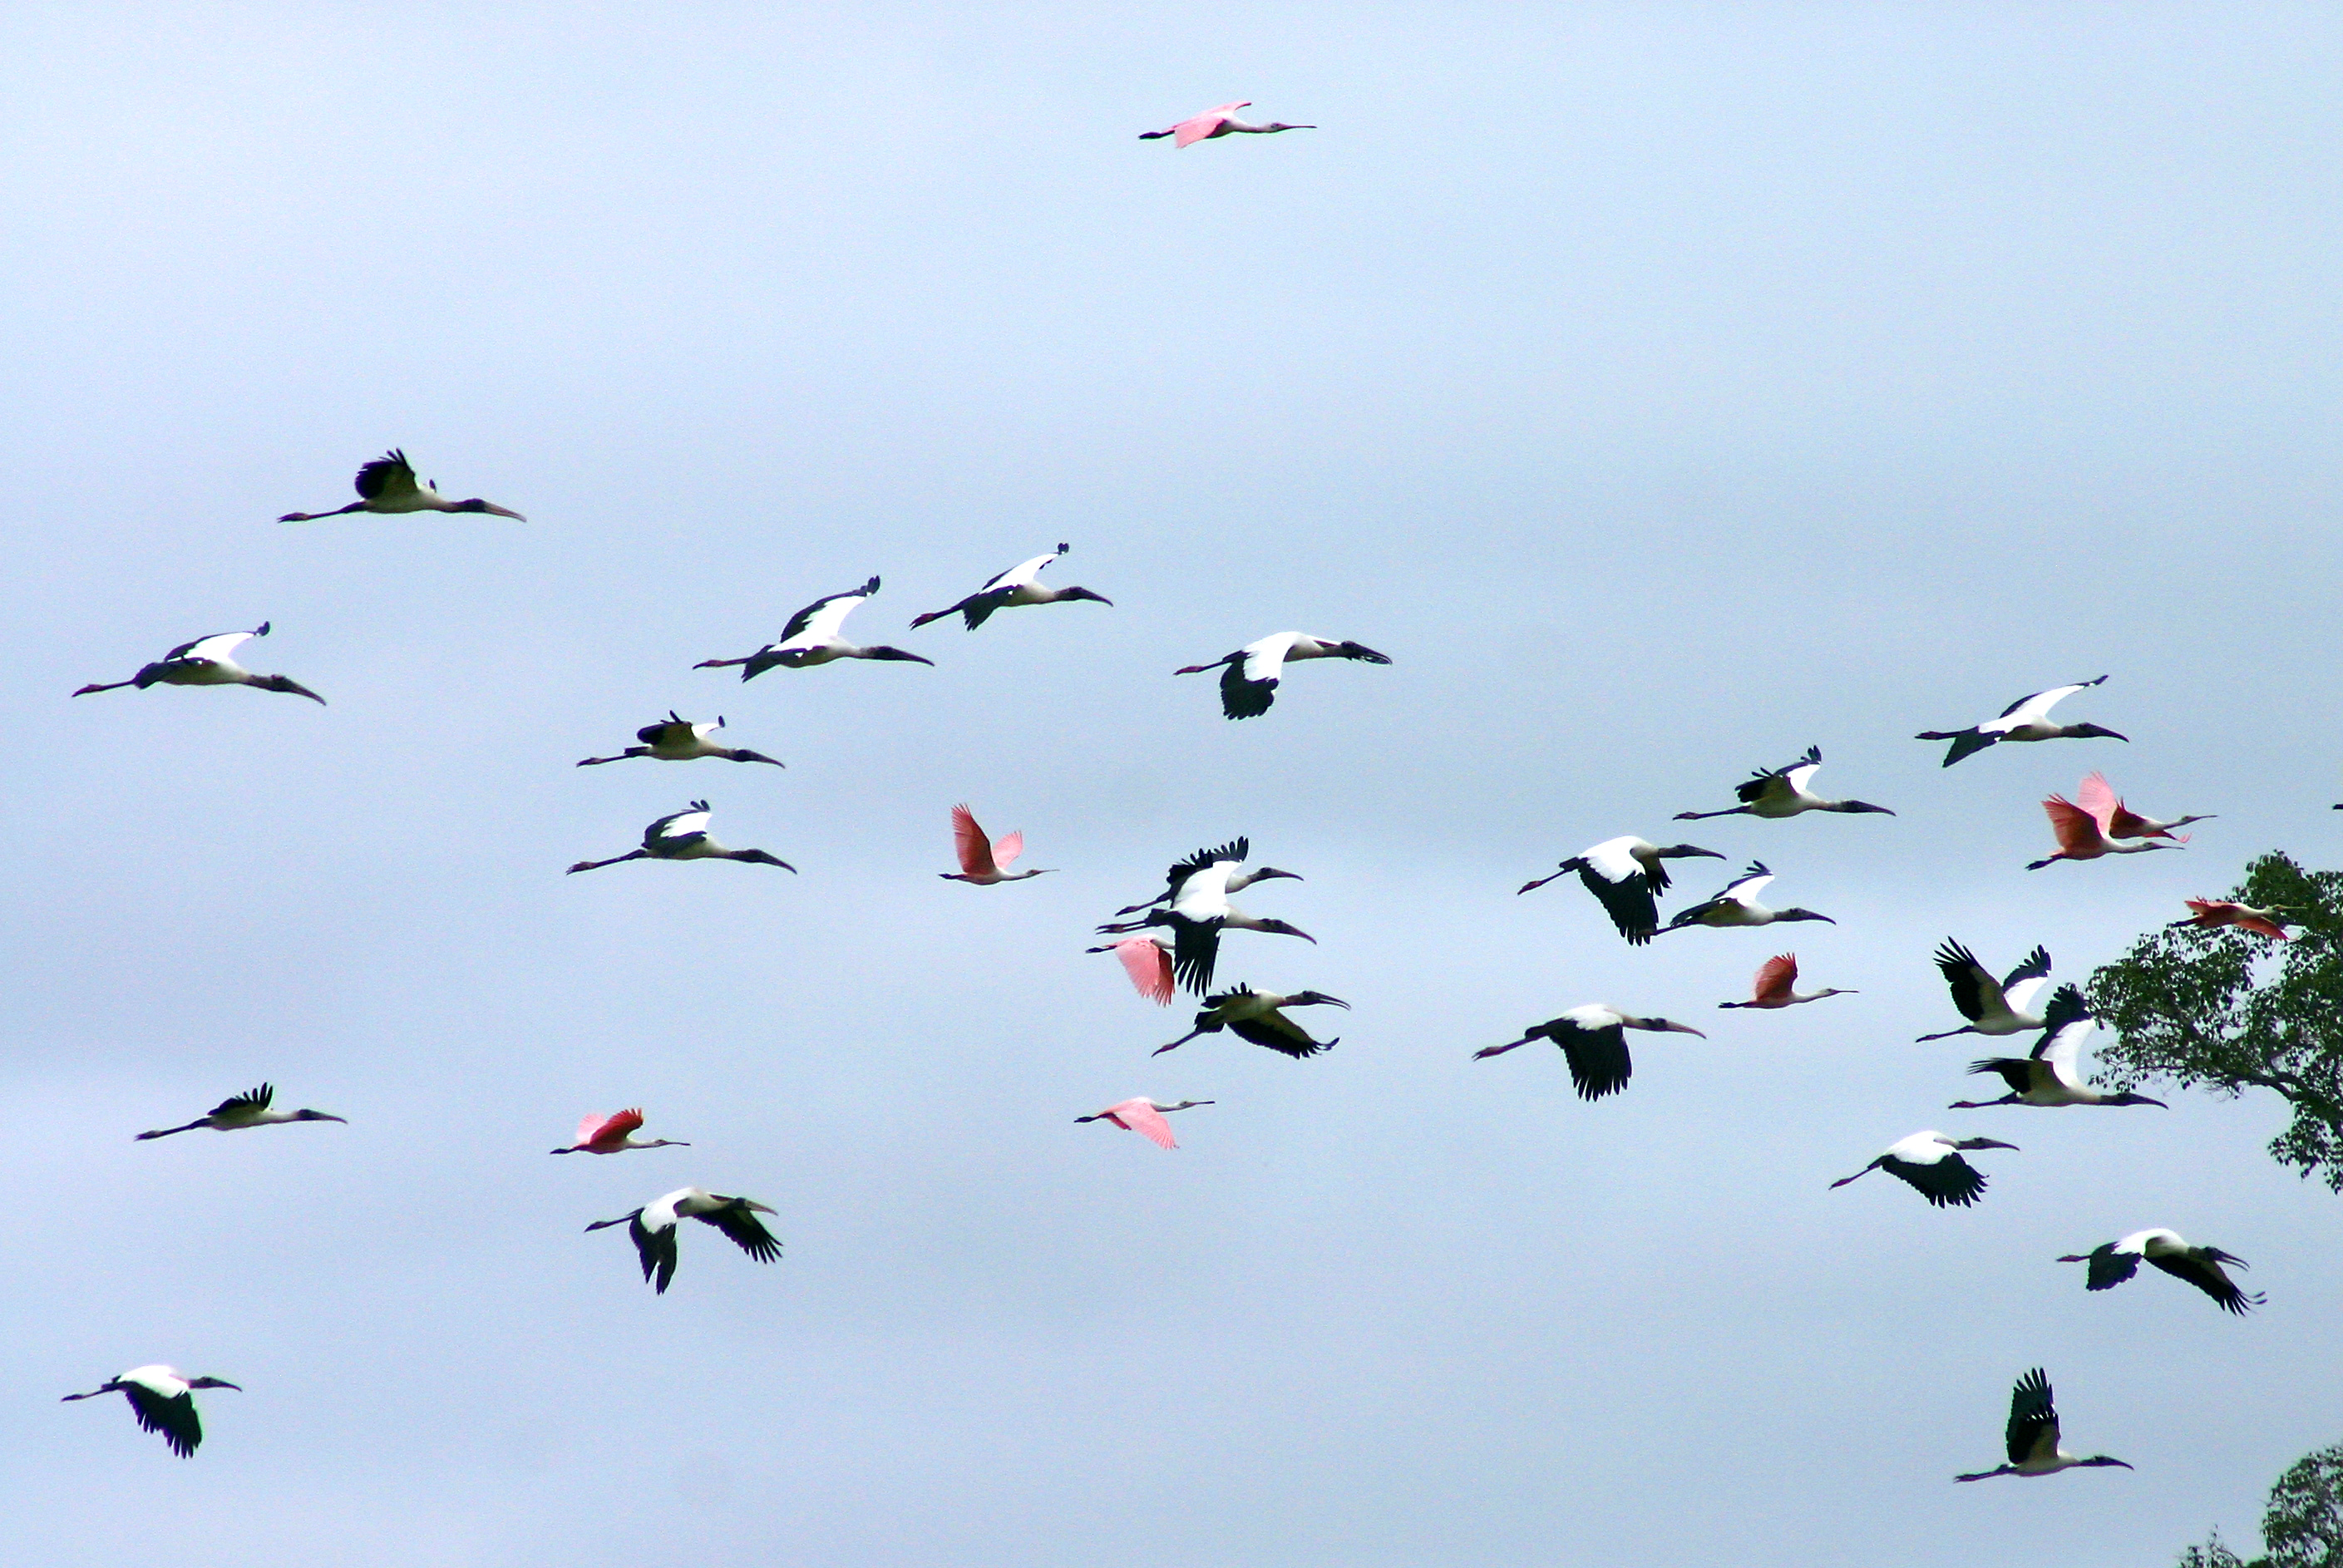 Large groups of different kinds of birds